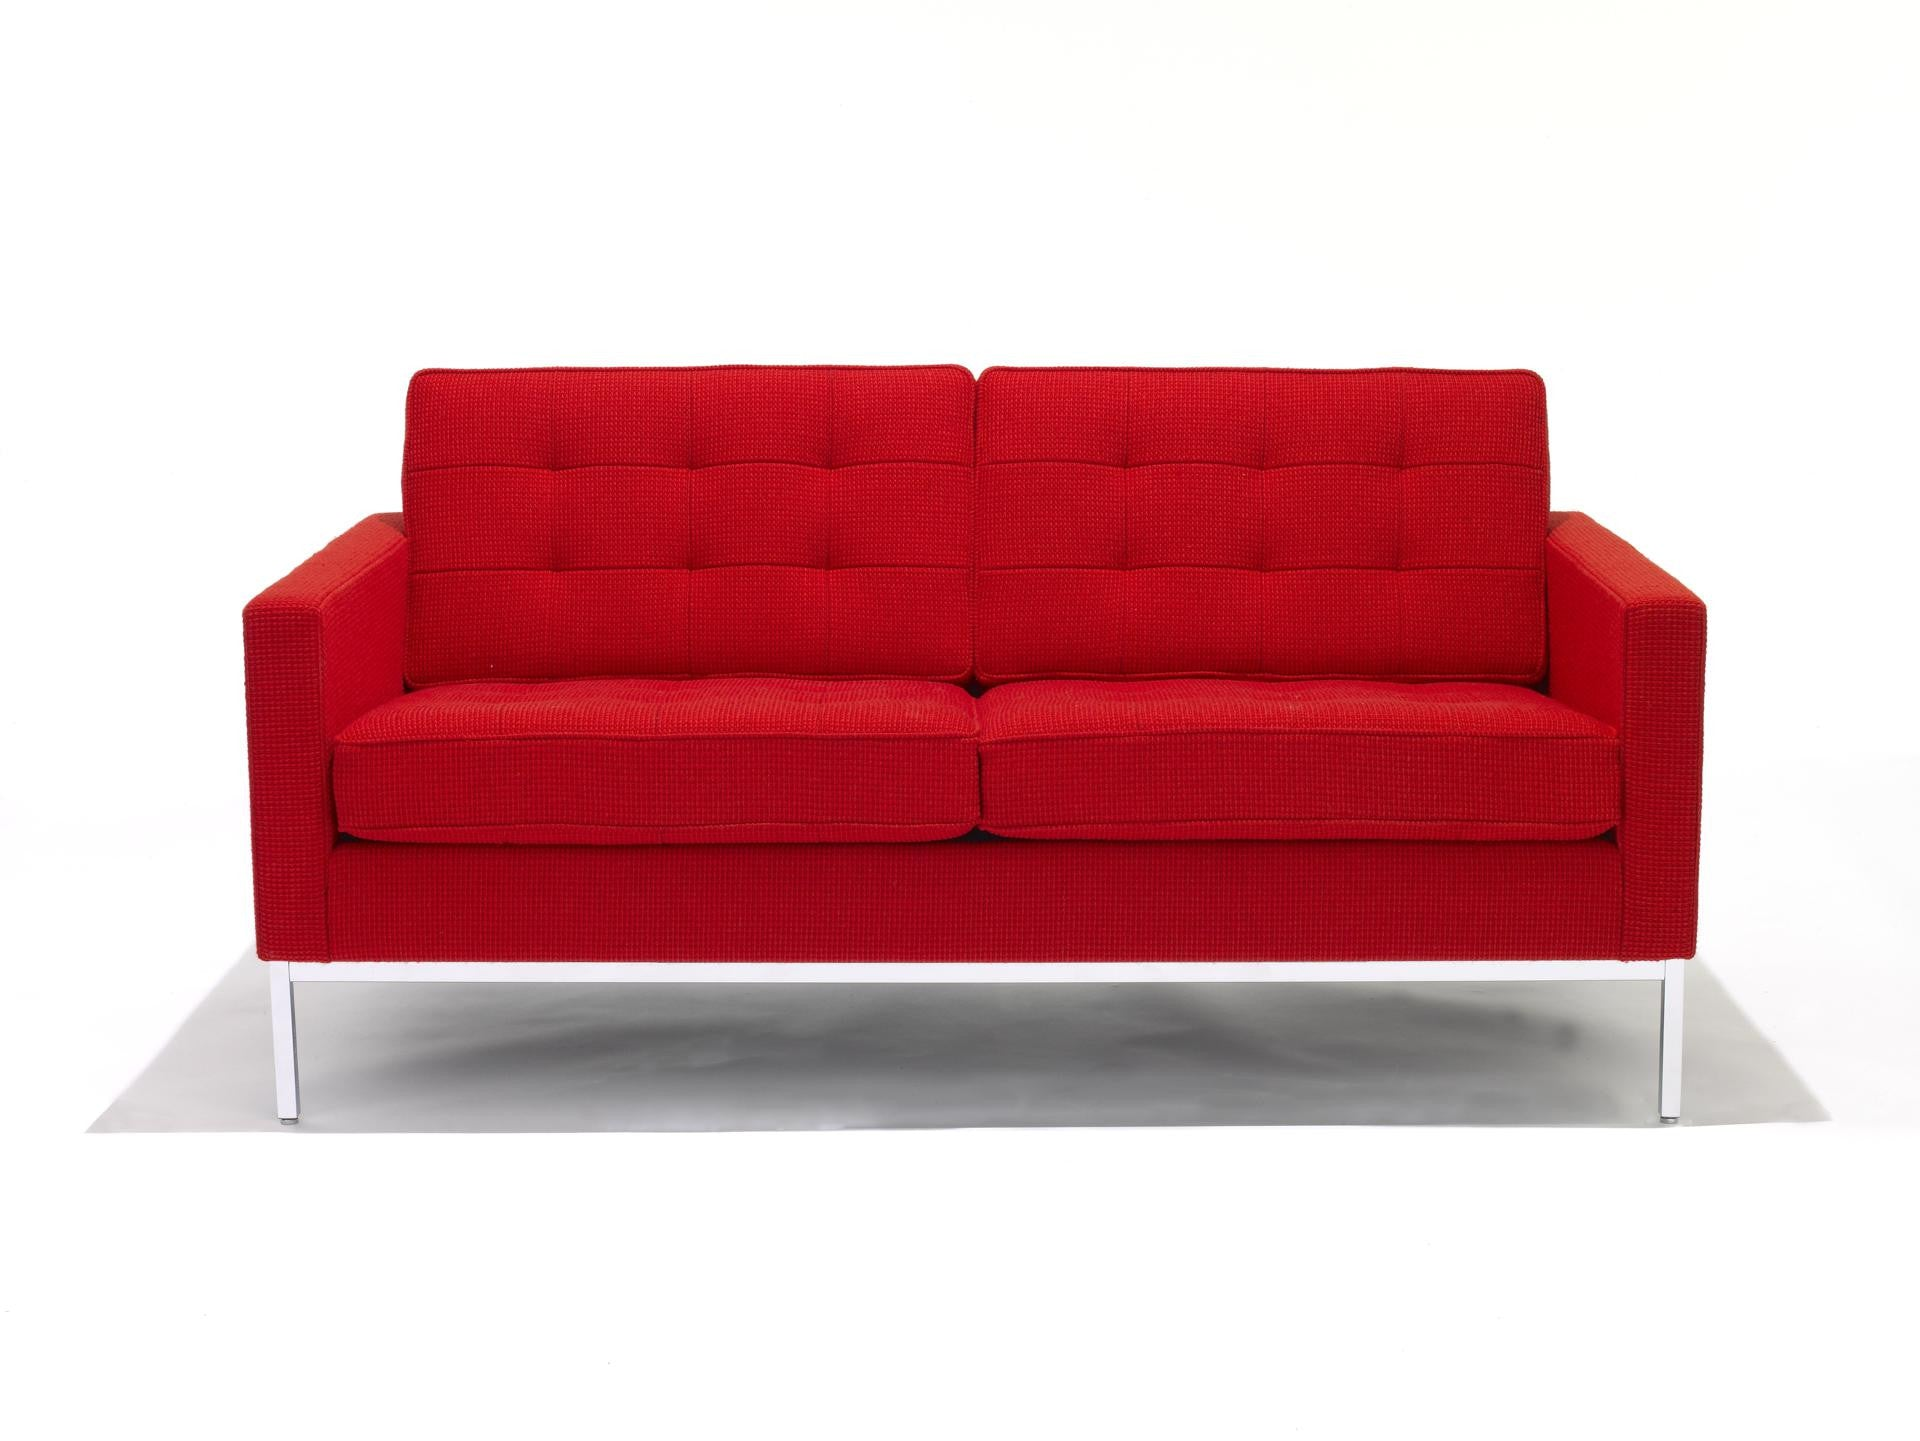 Pleasant Florence Knoll Sofa 2 Seat Download Free Architecture Designs Scobabritishbridgeorg